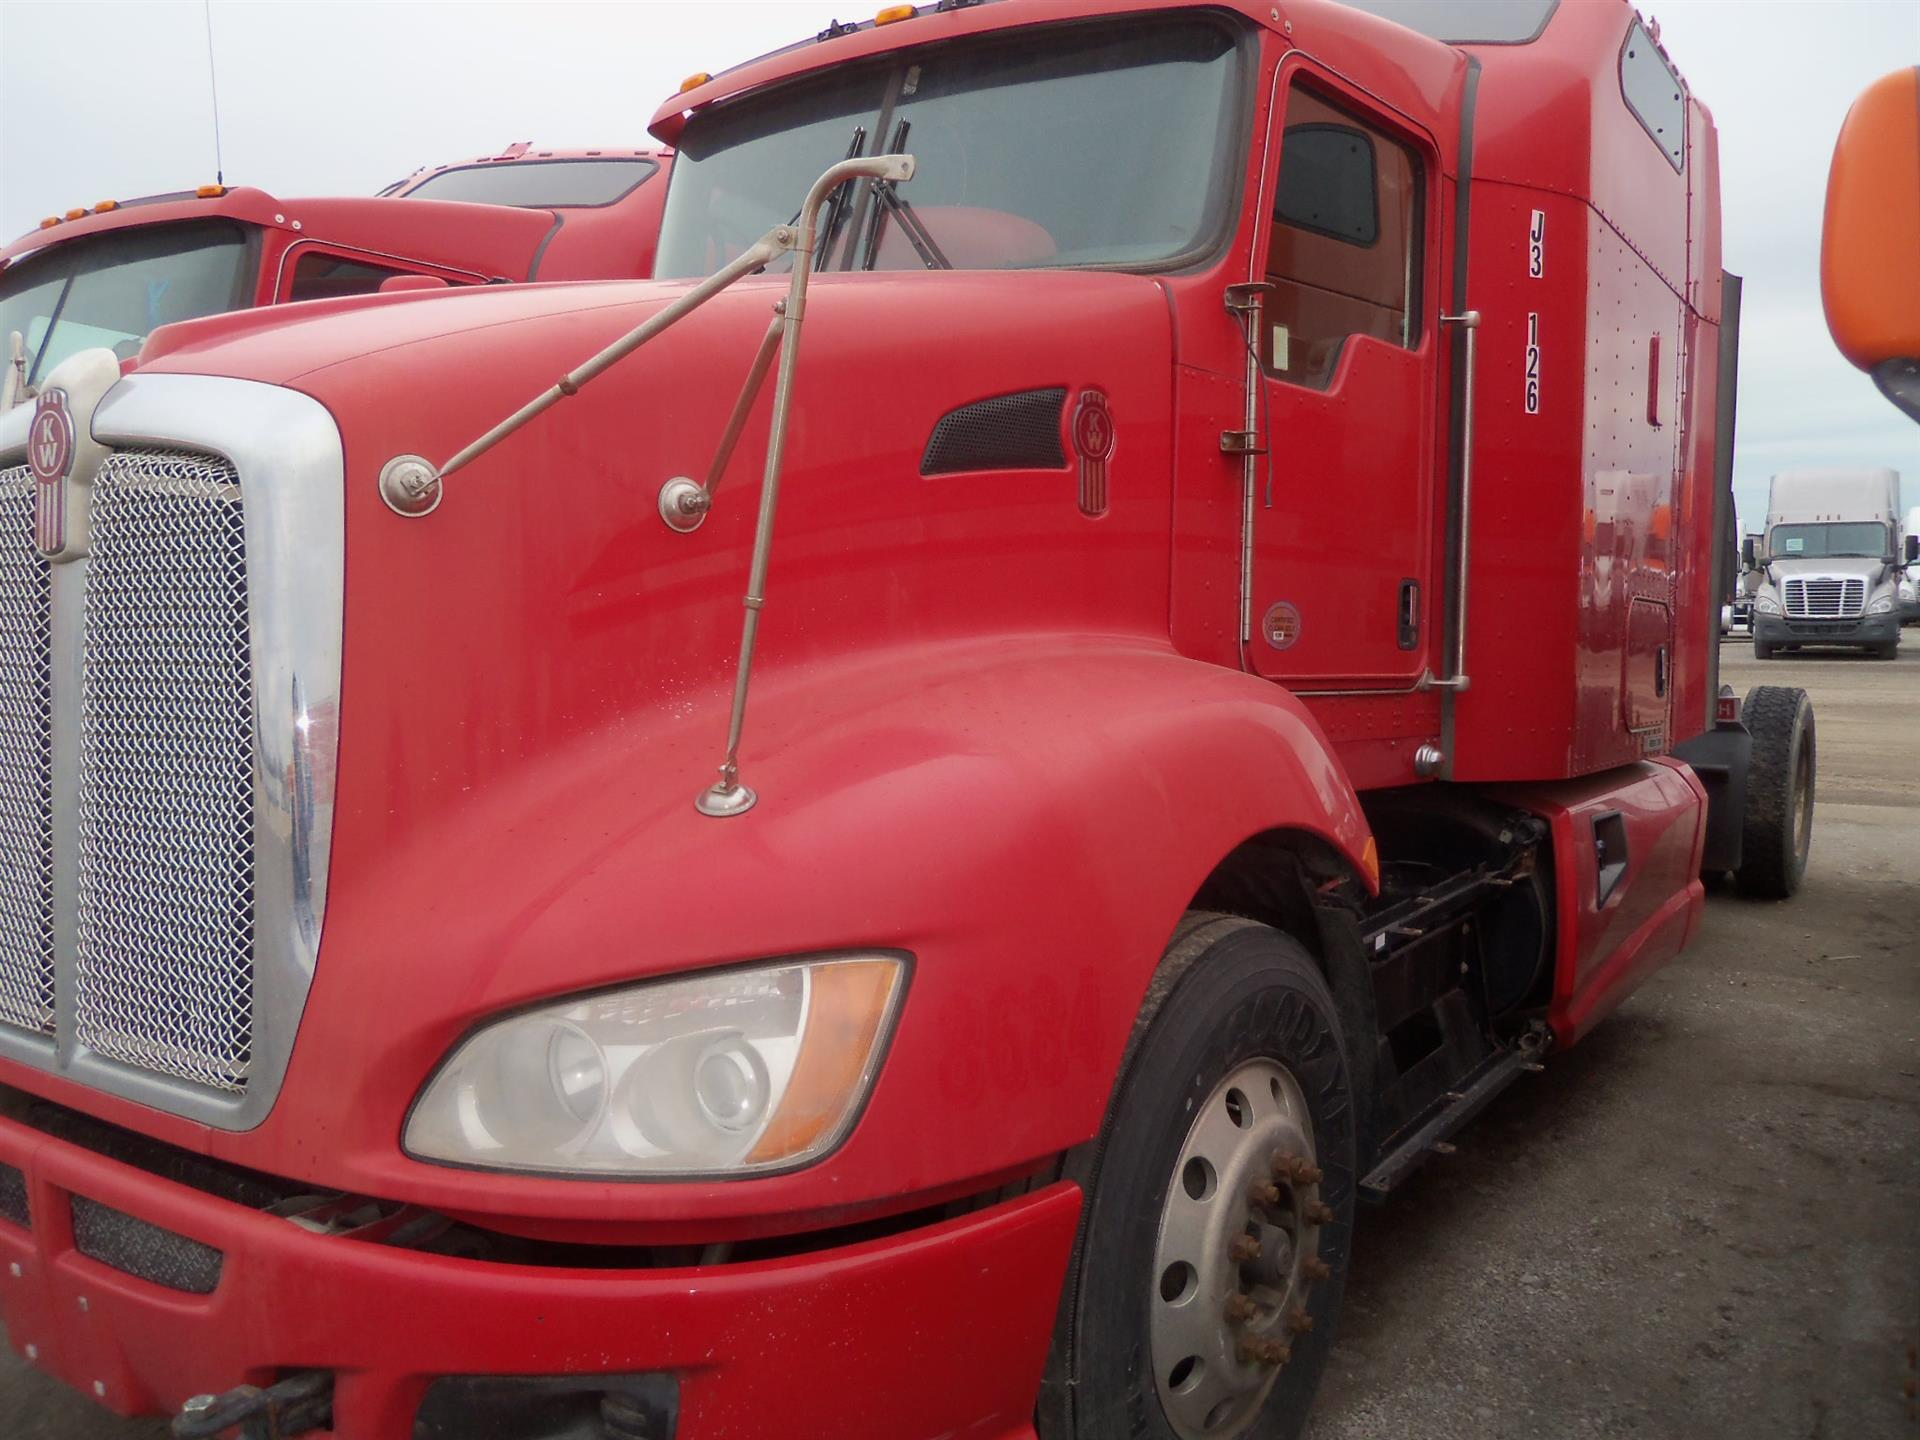 USED 2012 KENWORTH UNKNOWN DAYCAB TRUCK #138499